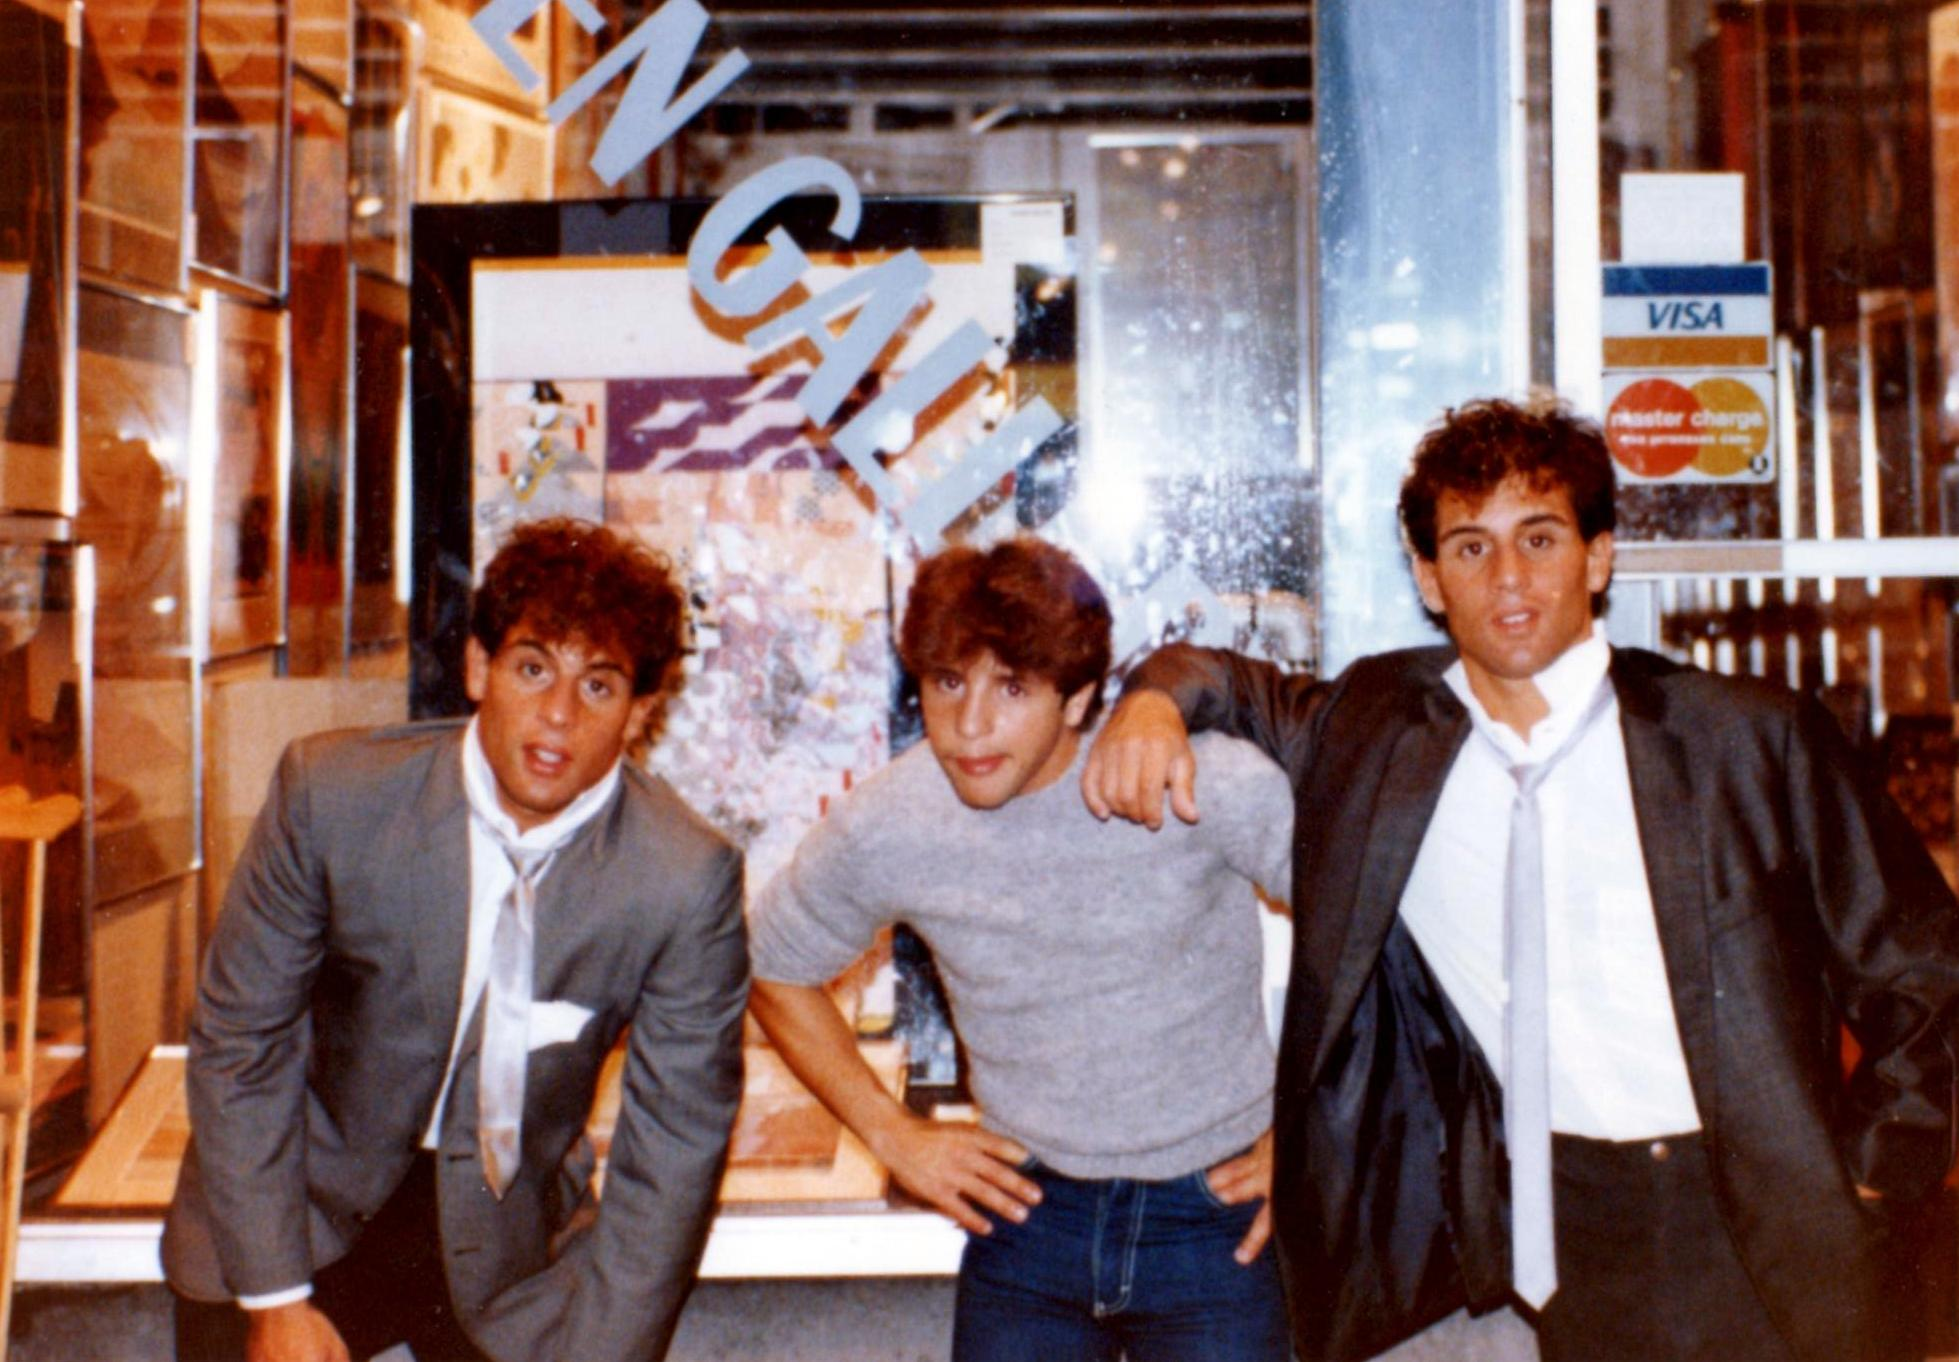 Alex, Gerard, and John Rinaldi outside of The Comic Strip in 1981